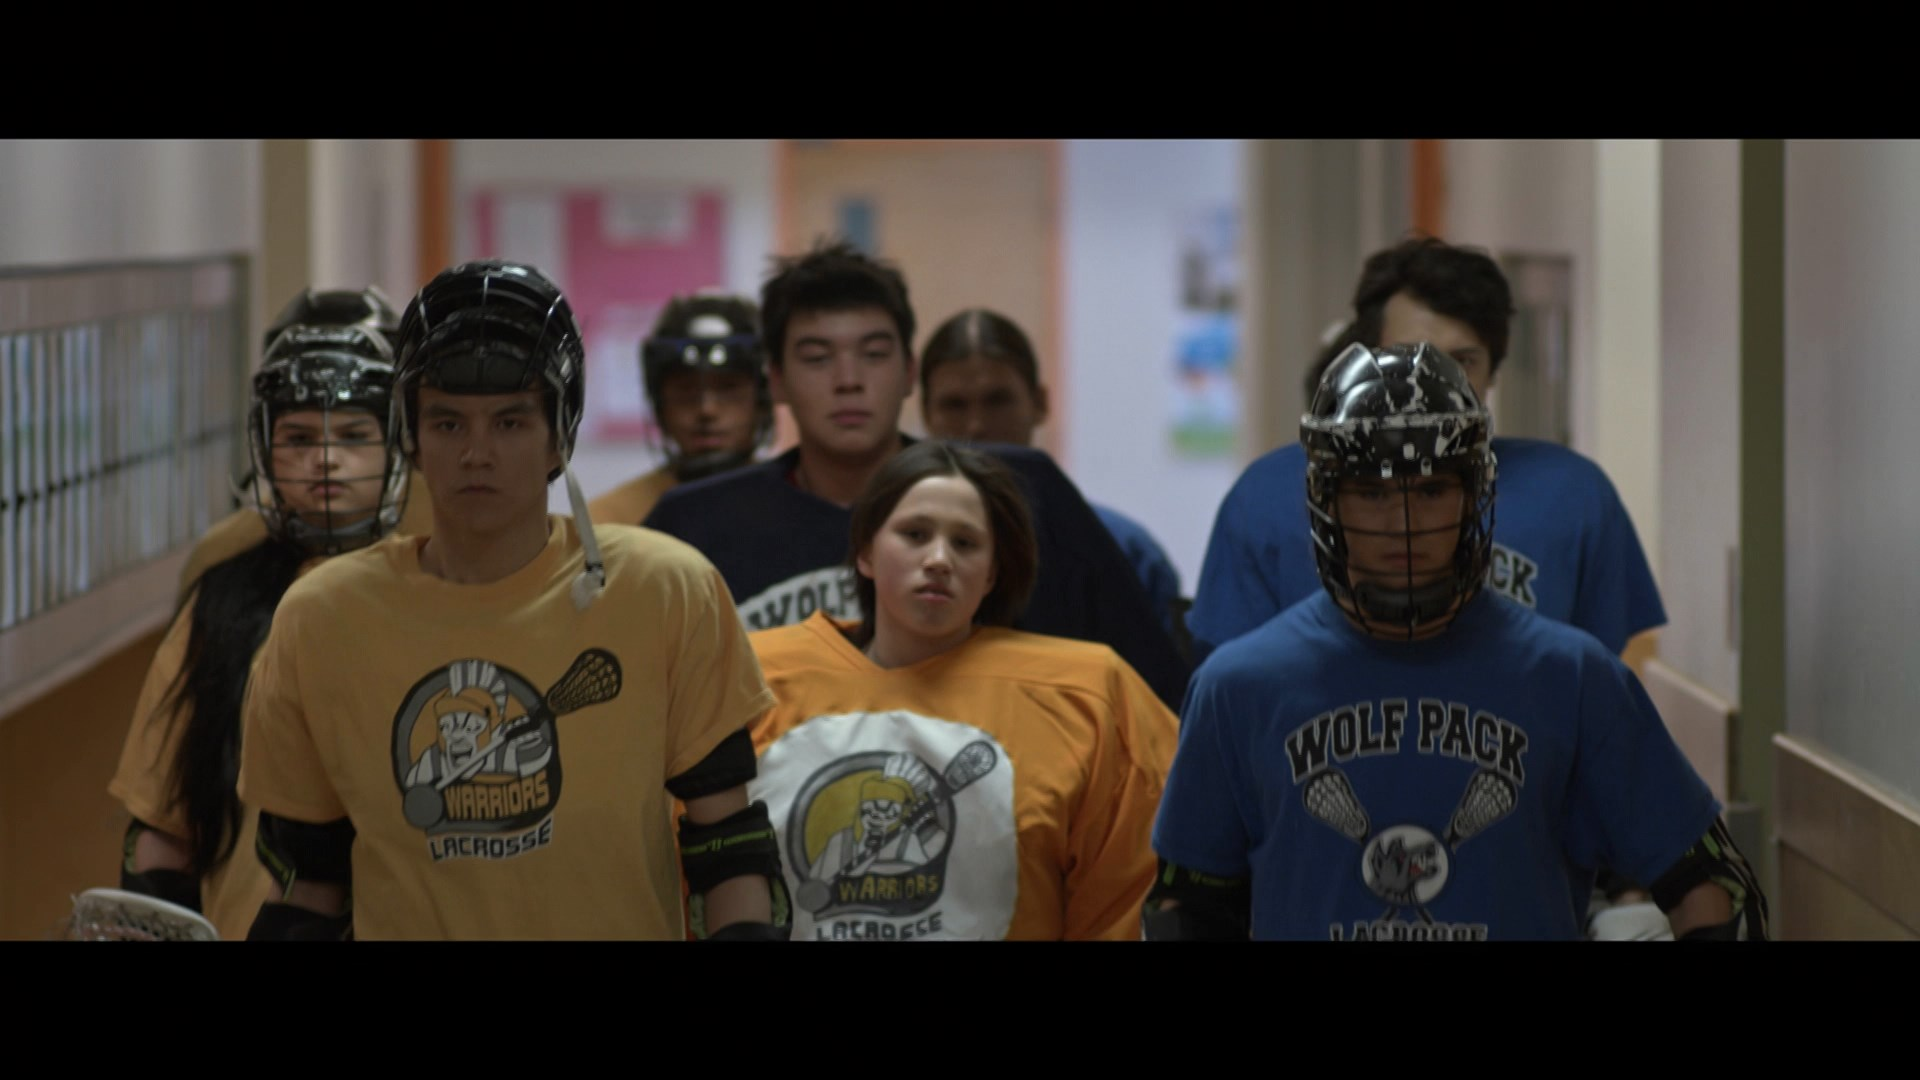 The Grizzlies (2018) 1080p WEB-DL Latino